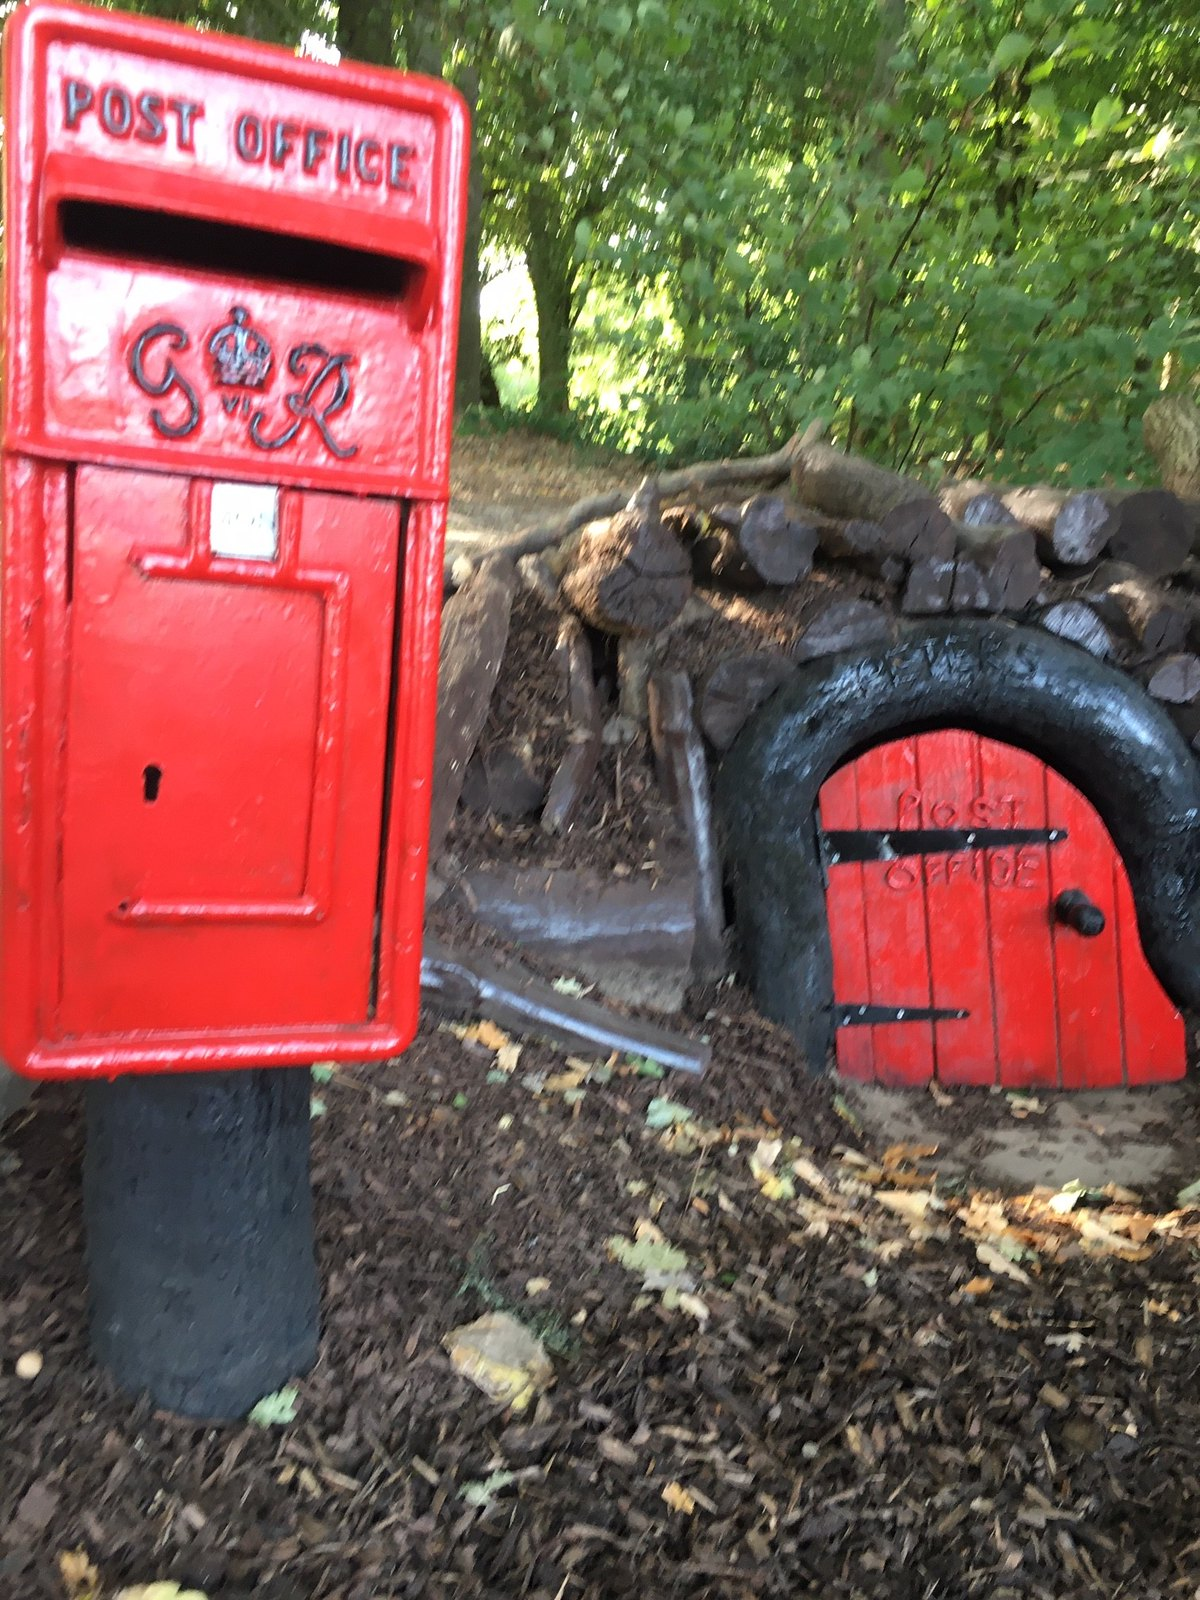 Peter Rabbit's Post Office Oxted Circular - No sign of the little lagomorph.